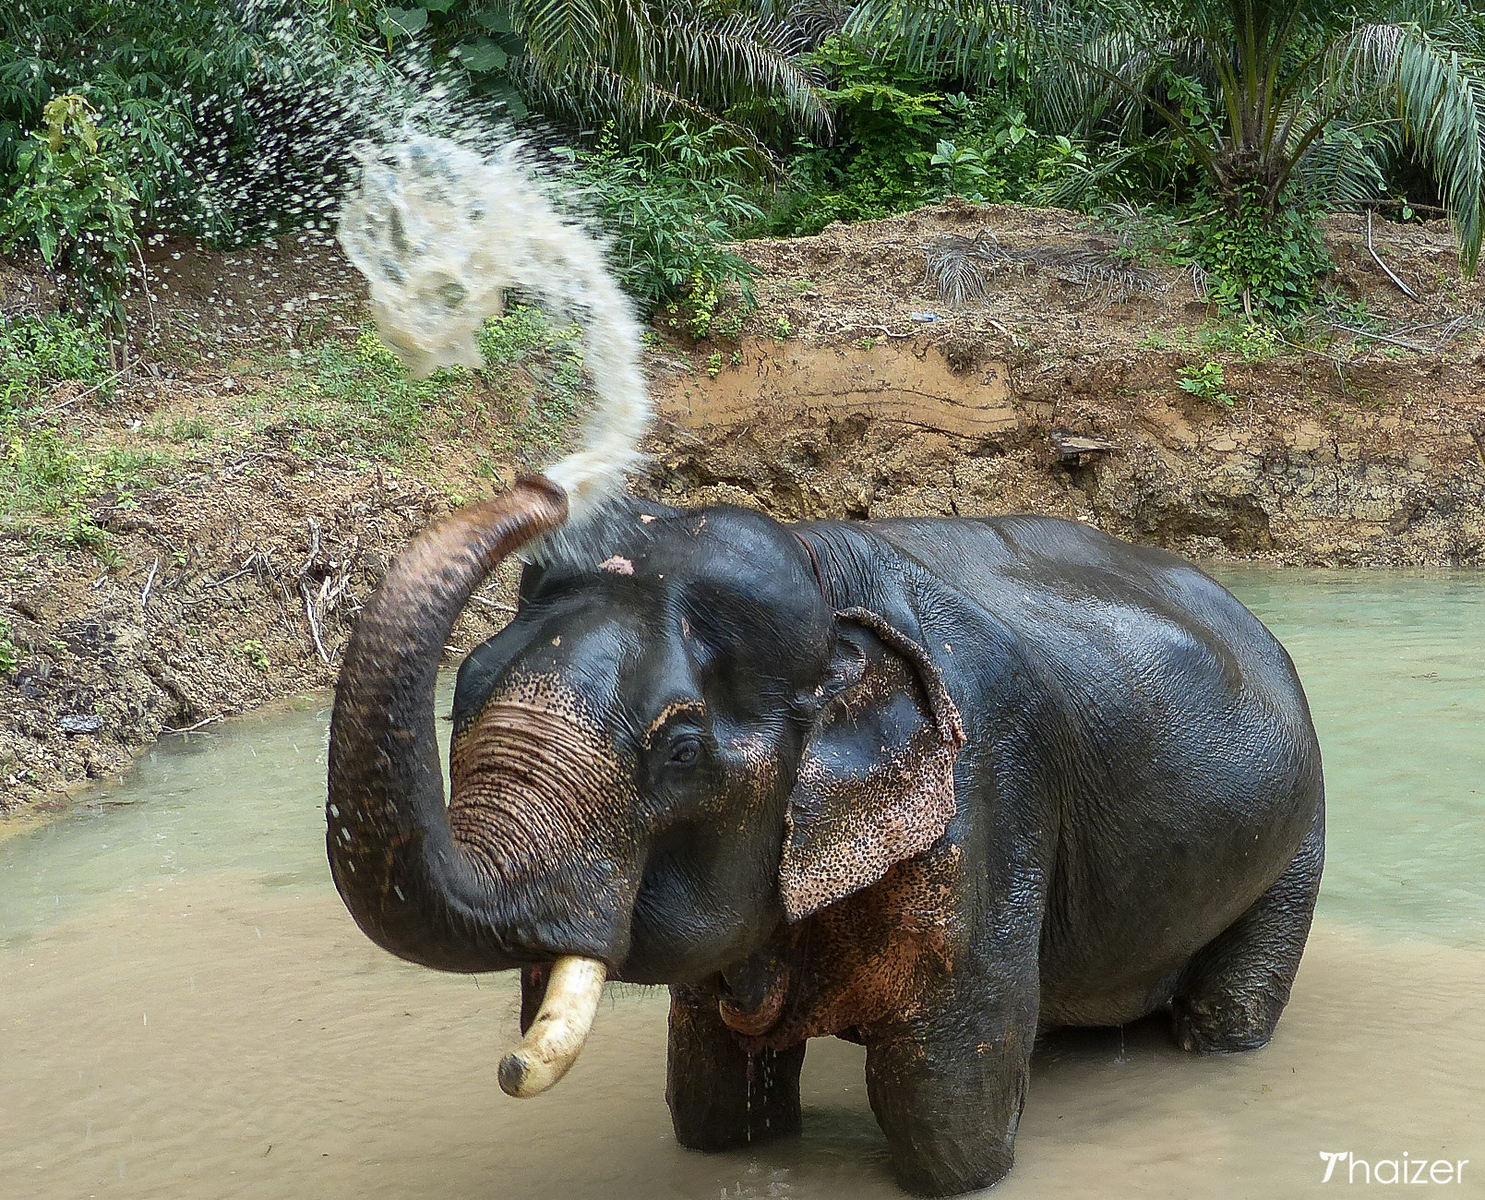 Somboon the elephant in his watering hole in Khao Sok, Thailand